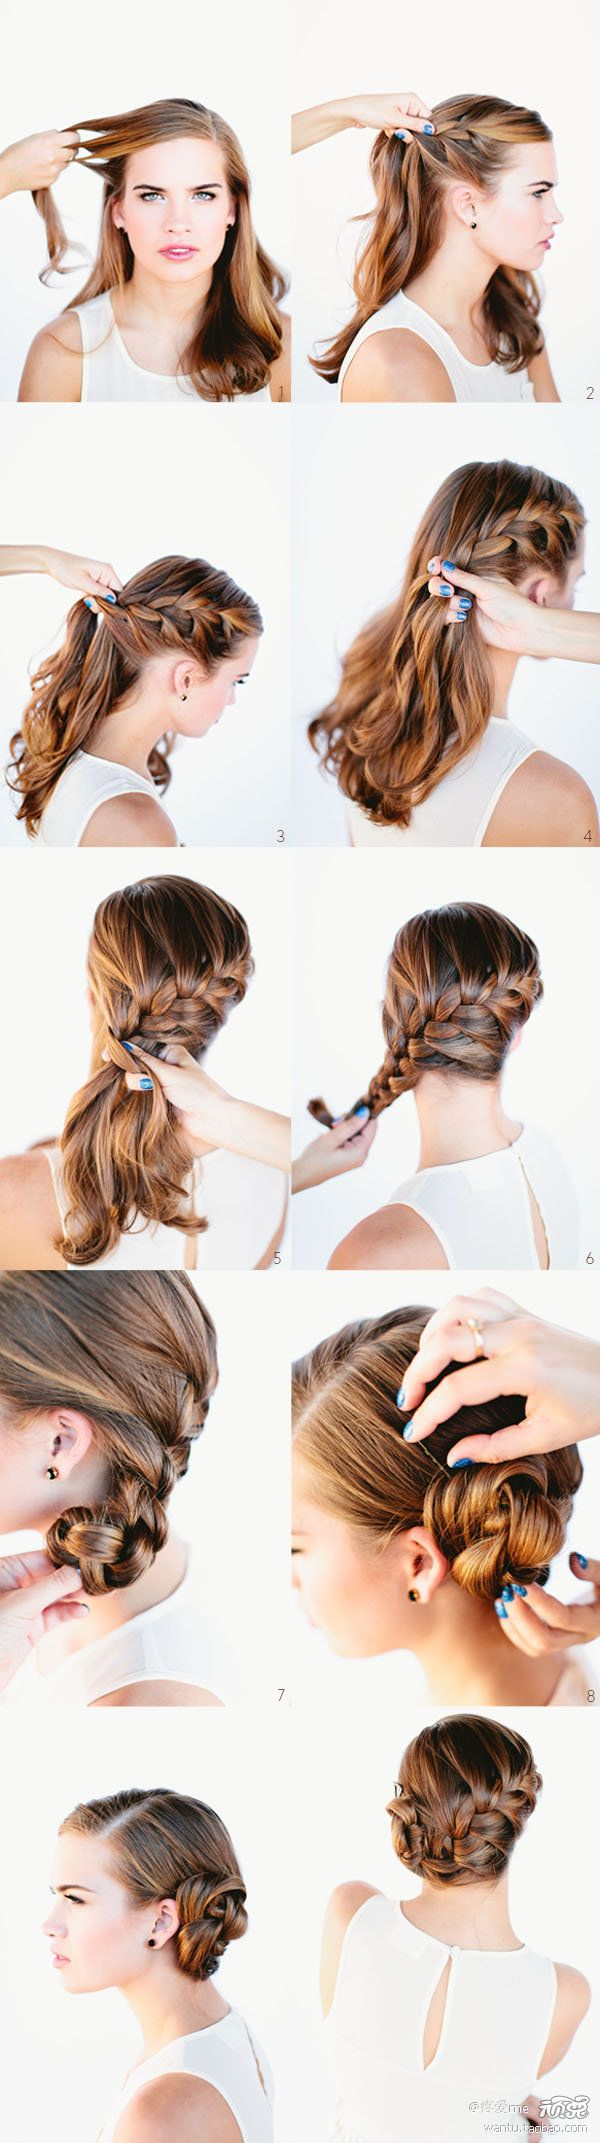 side braid - zzkko.com trança lateral embutida treccia laterale